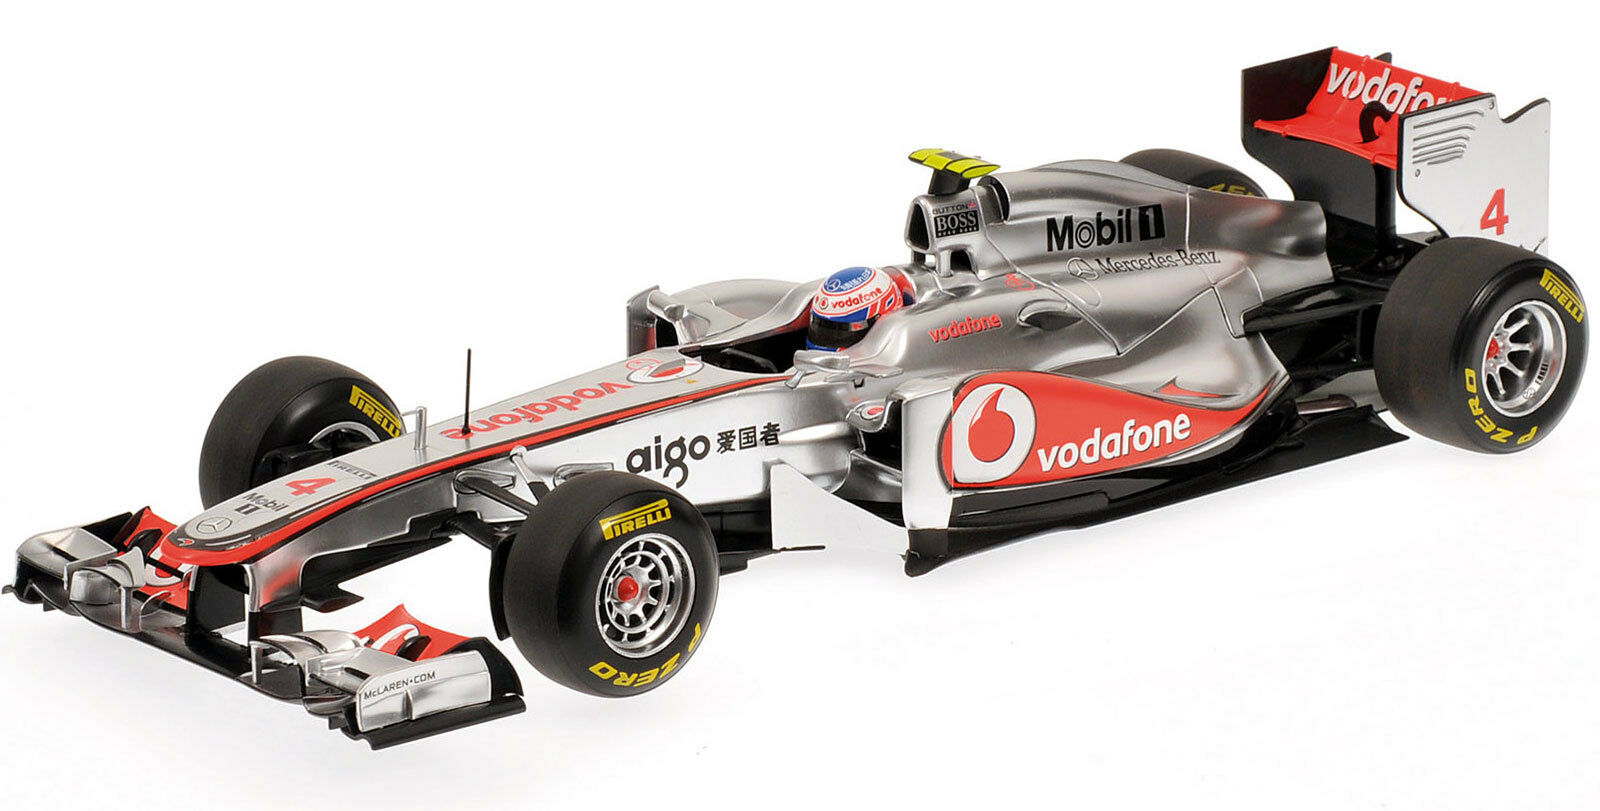 alta qualità genuina MINICHAMPS 1 18 2011 2011 2011 VODAFONE MCLAREN MERCEDES MP4-26 JENSON BUTTON 530111804  80% di sconto